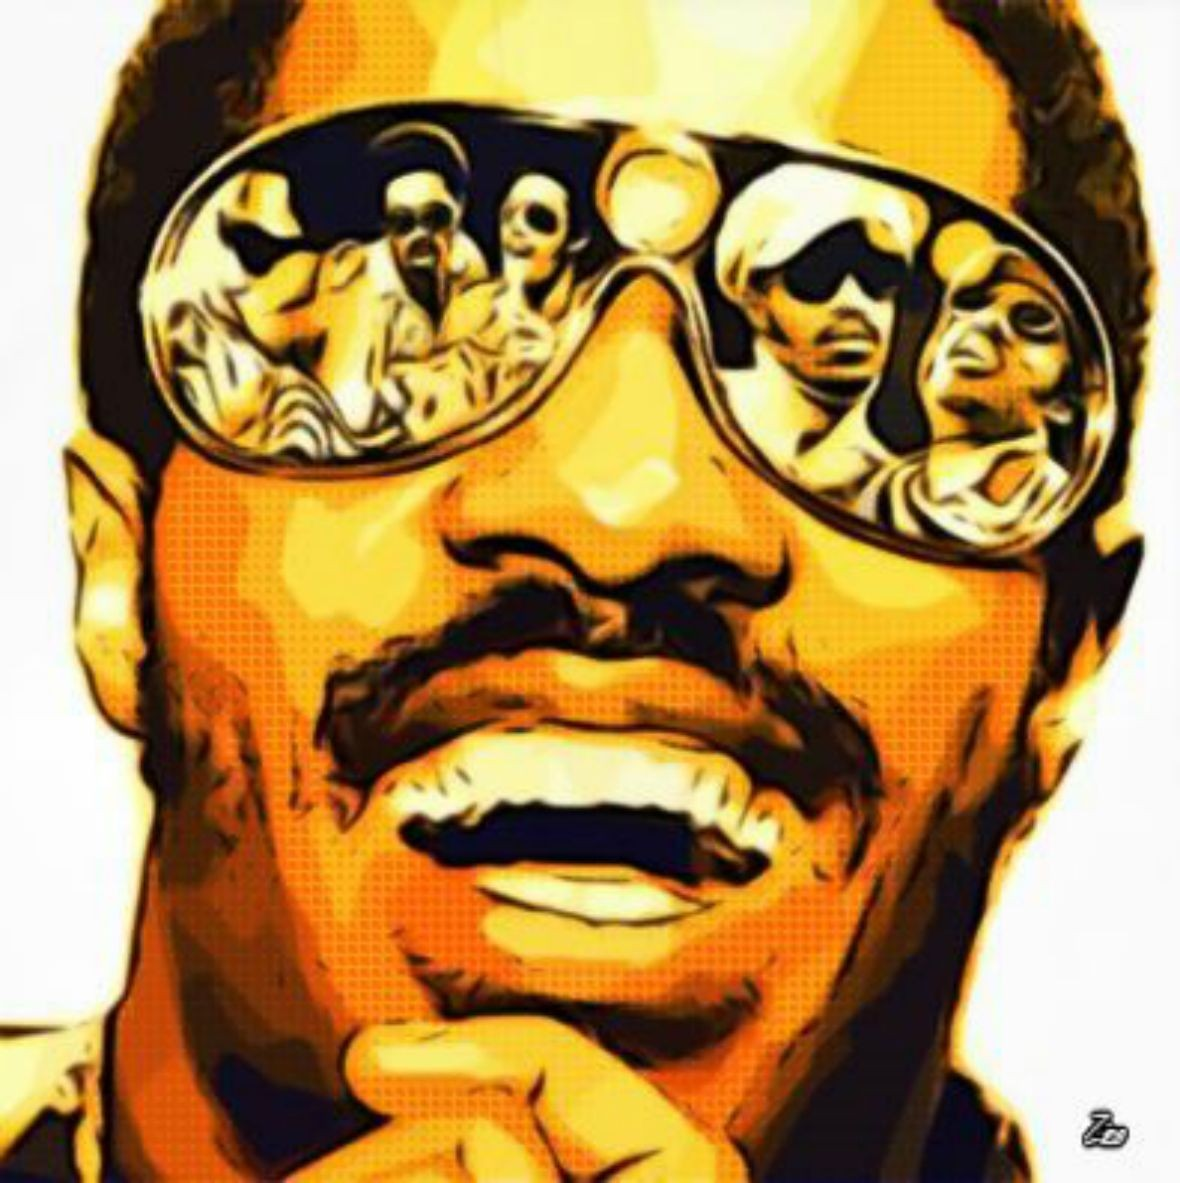 Moustache Wallpaper Hd Musicians Singer Stevie Wonder Digital Art Songs Pop